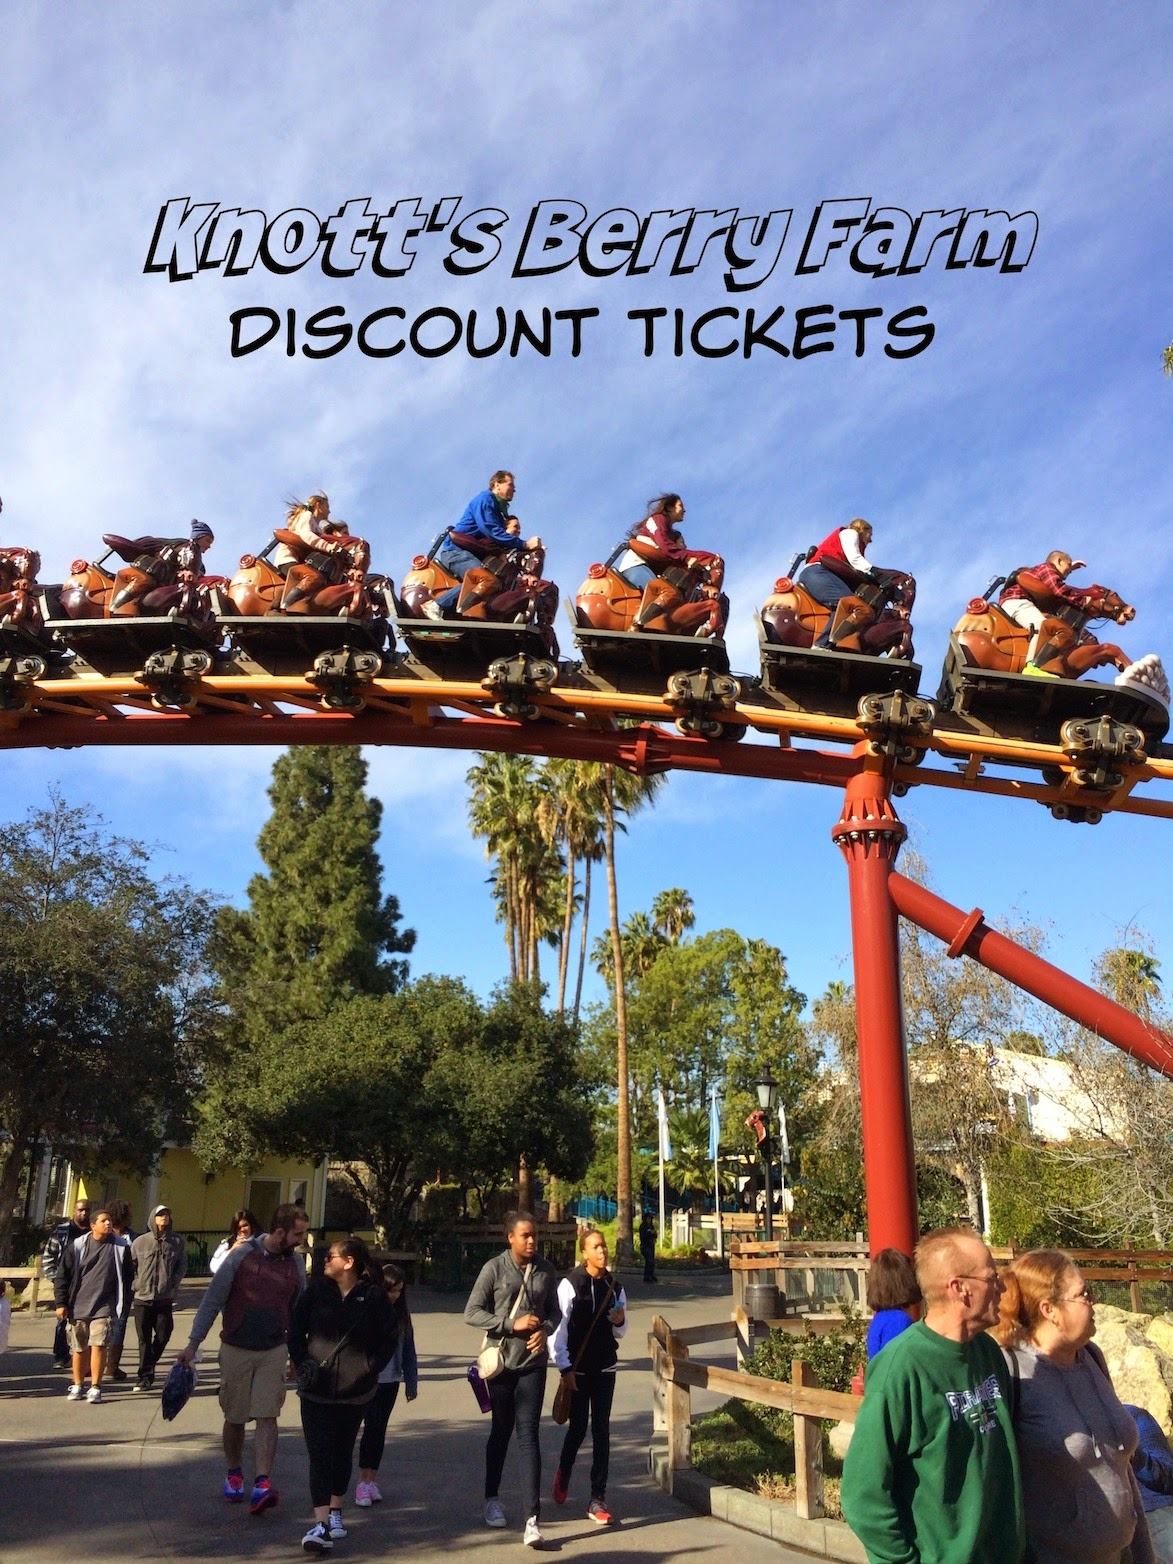 knotts discount tickets knotts berry farm tickets 37 39 only - Knotts Berry Farm Halloween Tickets